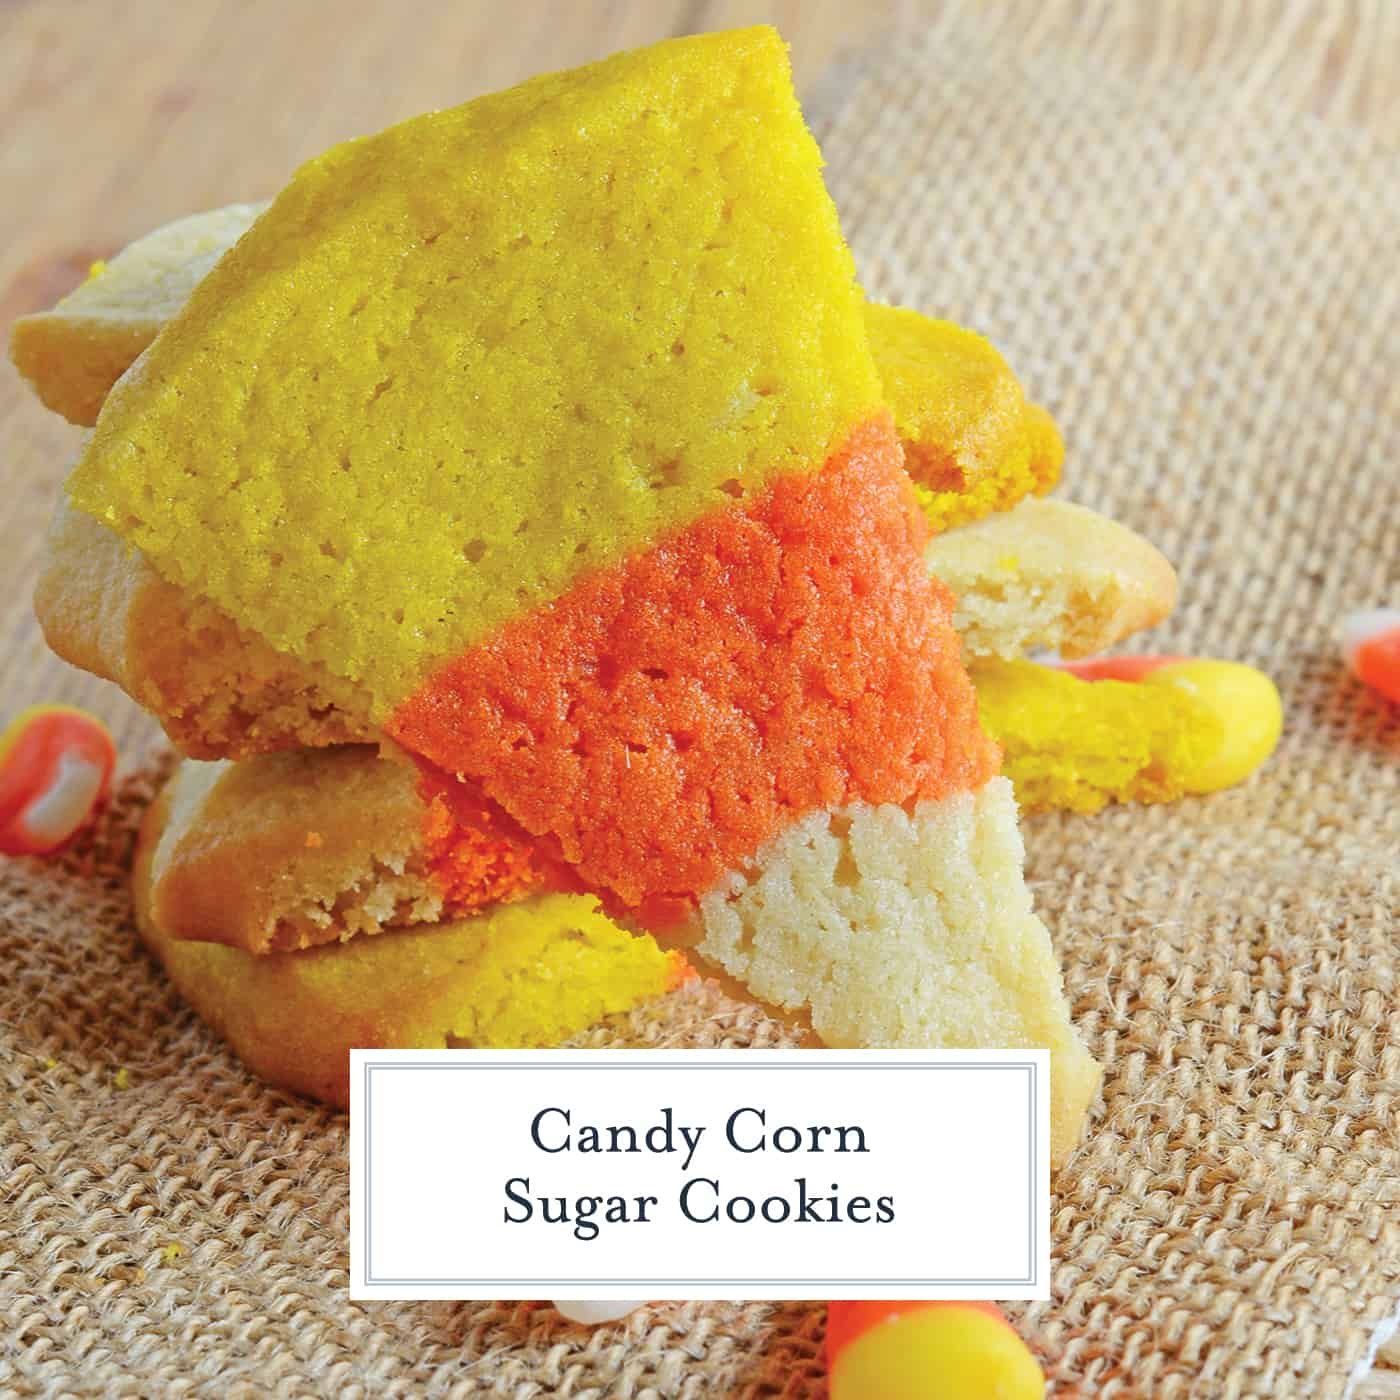 Candy Corn Sugar Cookies are the perfect Halloween Cookie! These festive and easy to make Halloween treats are perfect for any costume party! #halloweencookies #halloweendesserts #halloweensugarcookies www.savoryexperiments.com